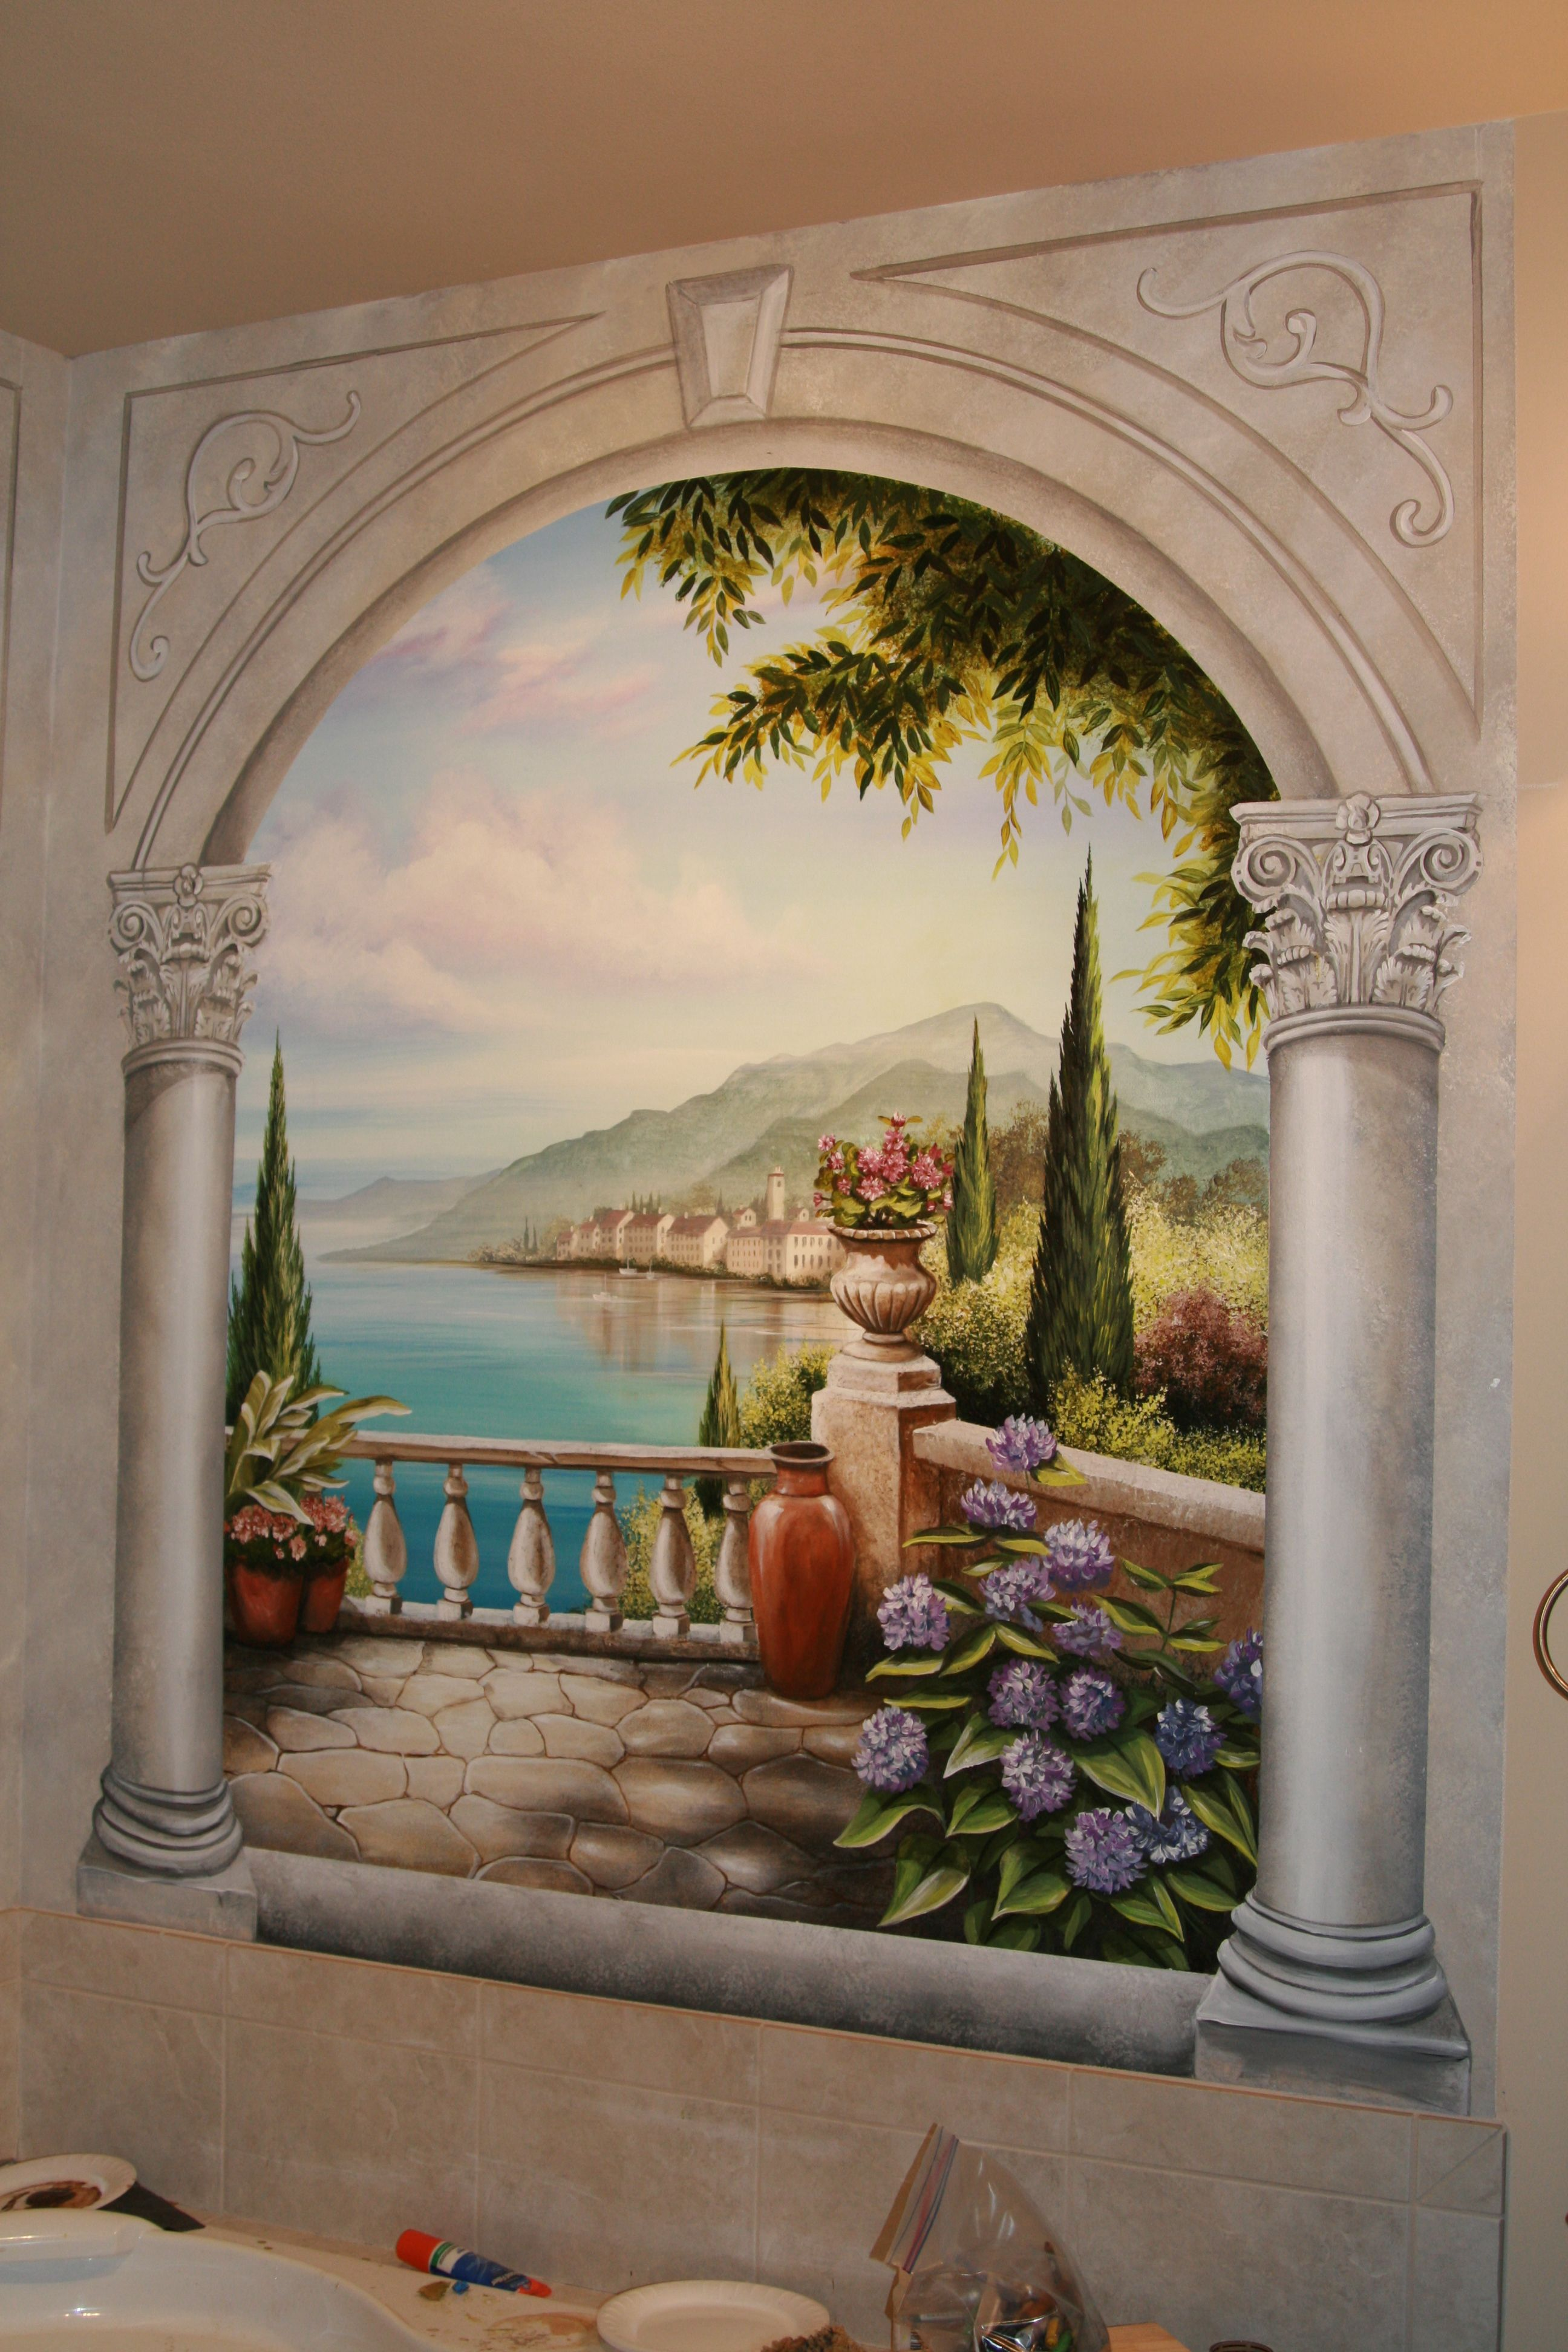 bathroom mural over corner jetted tub www ramonabalaz com on wall paintings id=91935